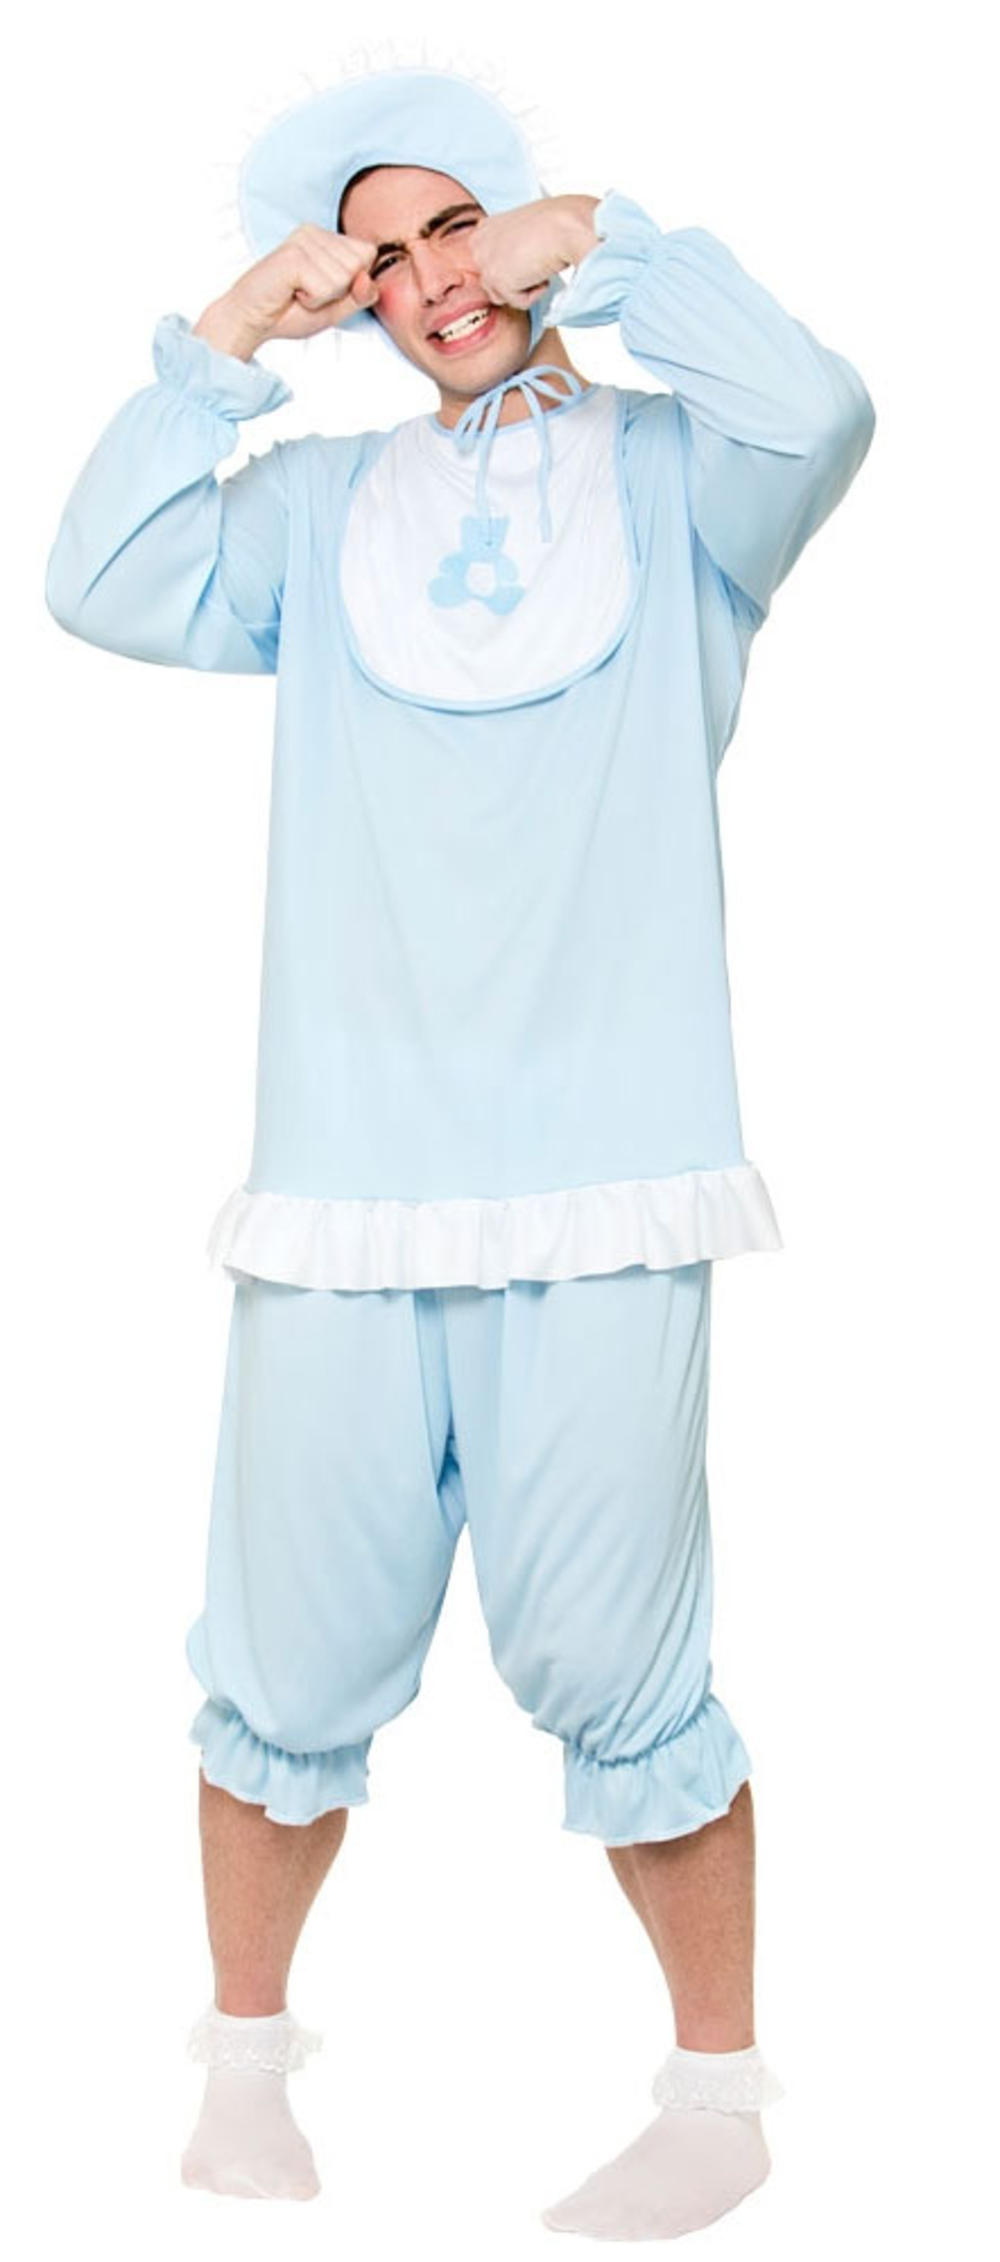 Blue Big Cry Baby Adults Fancy Dress Fun Novelty Mens Babies Suit Costume Outfit